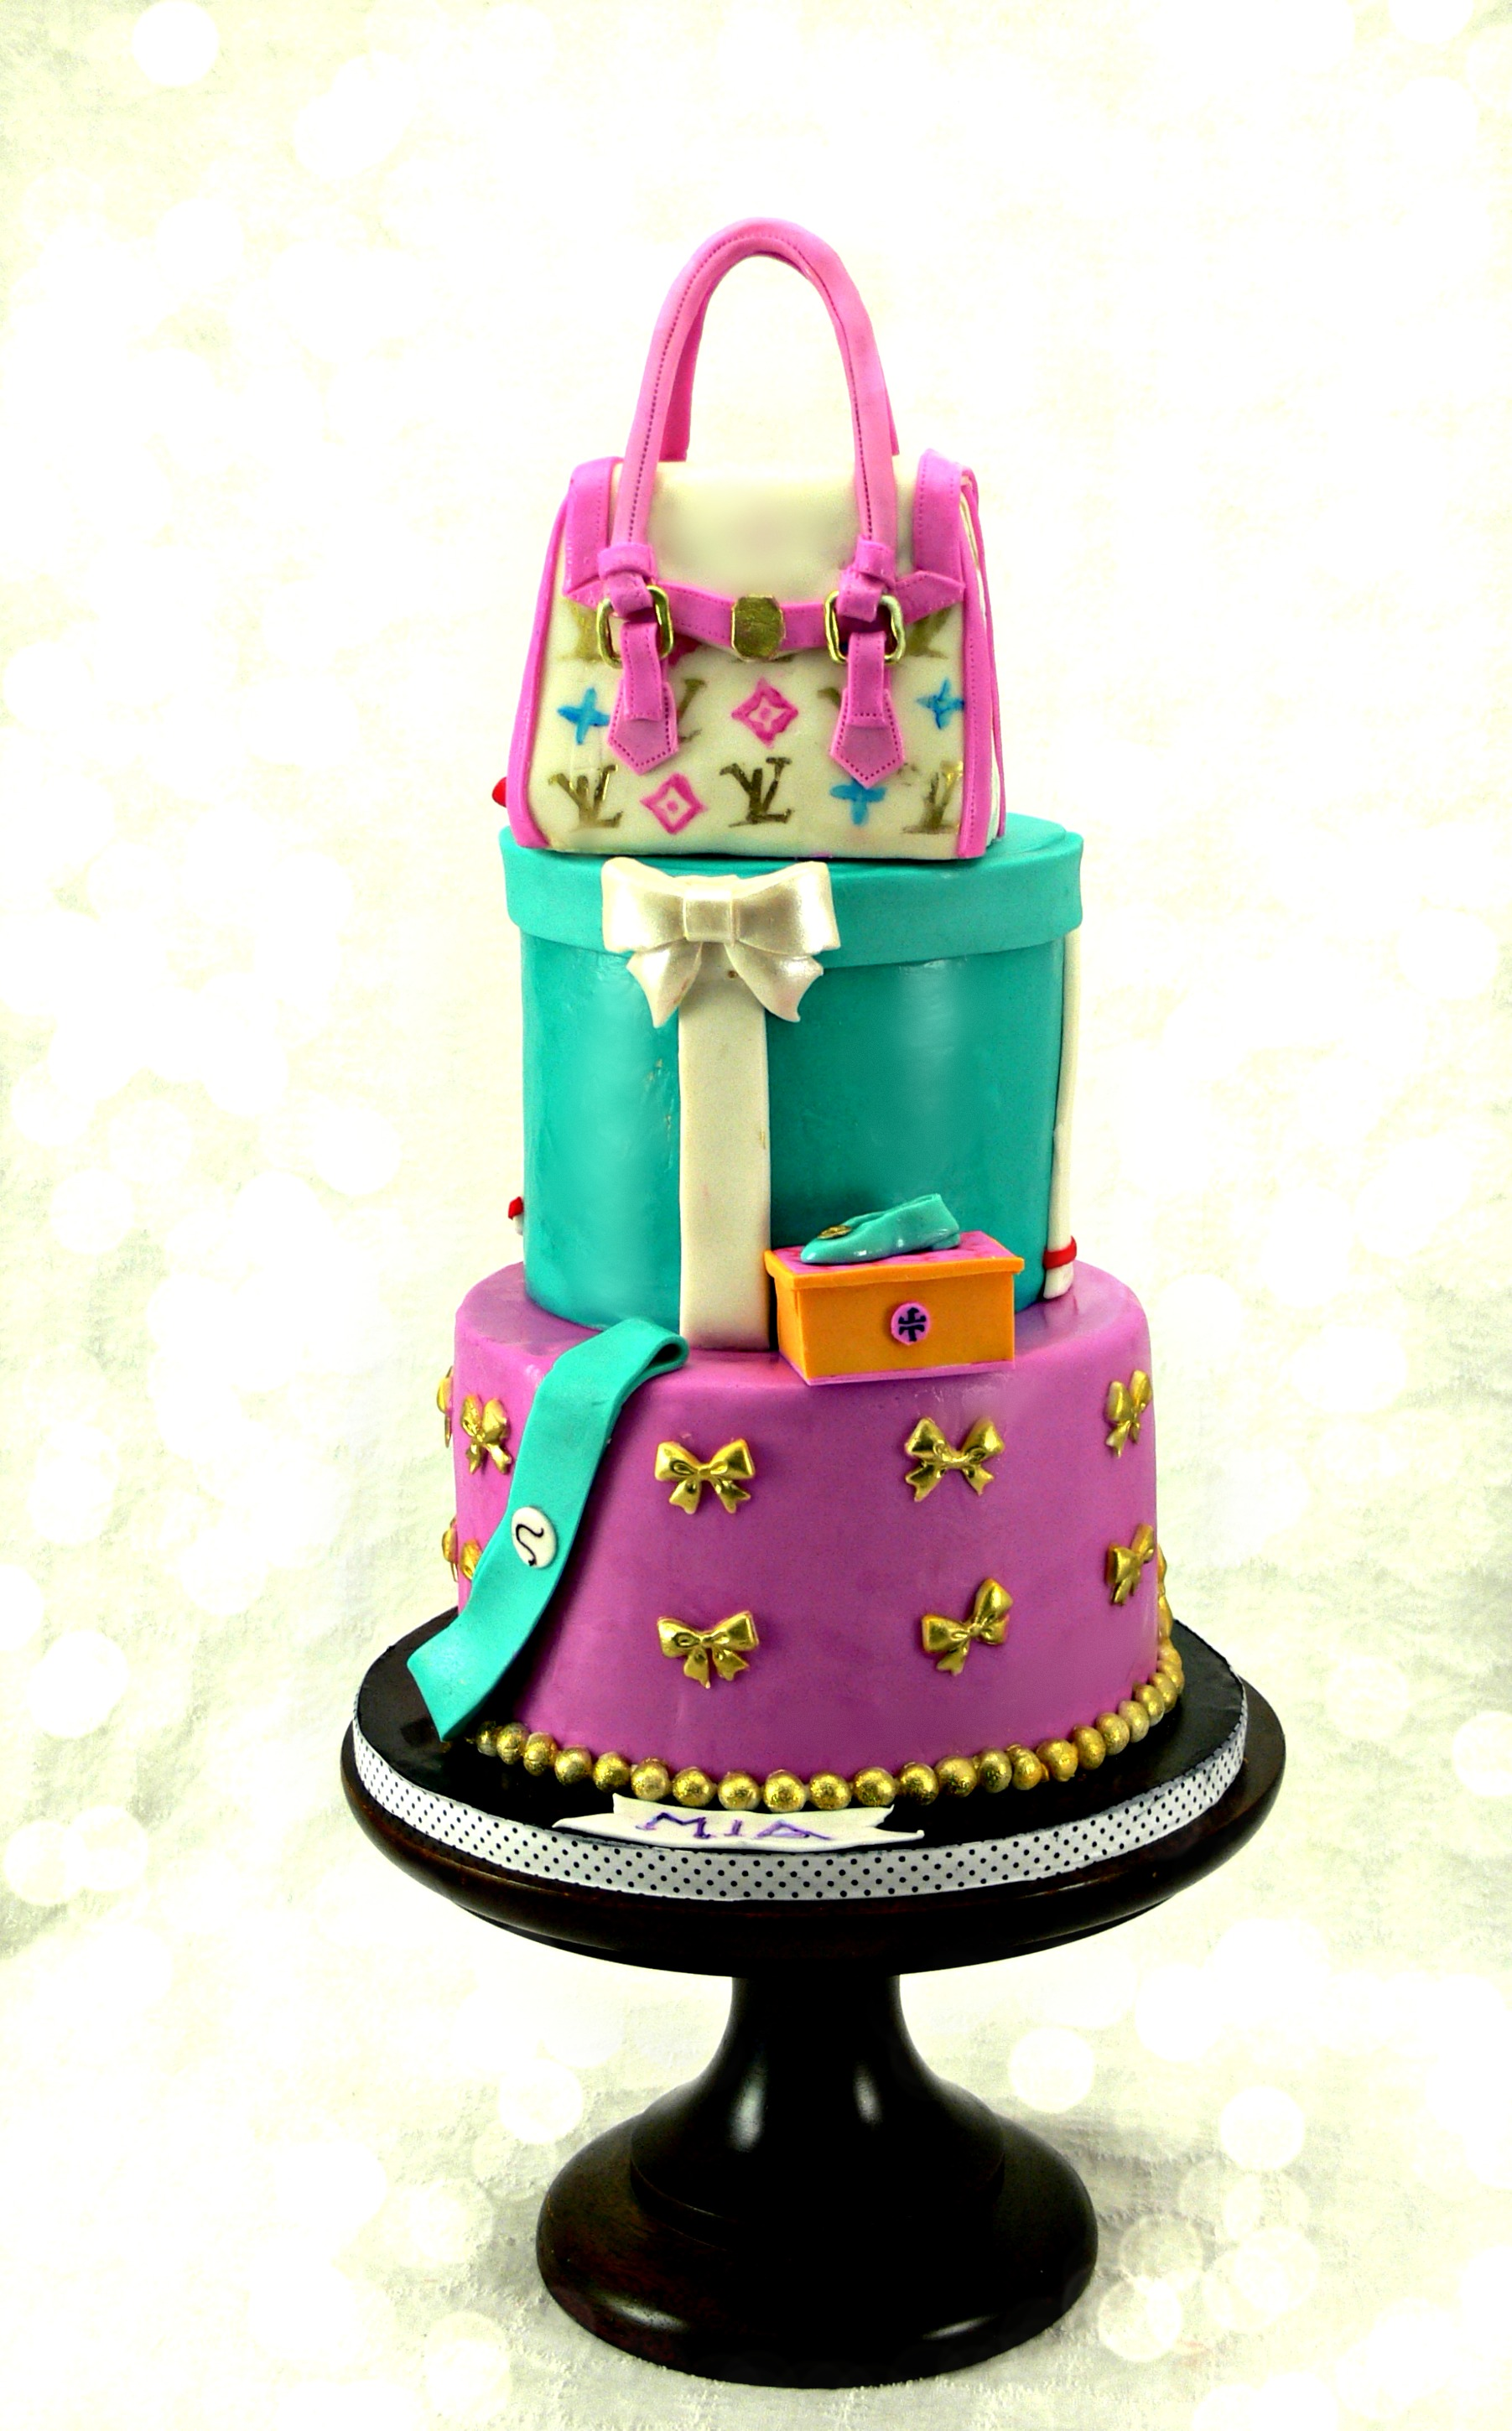 fashionista cake with louis bag .jpg